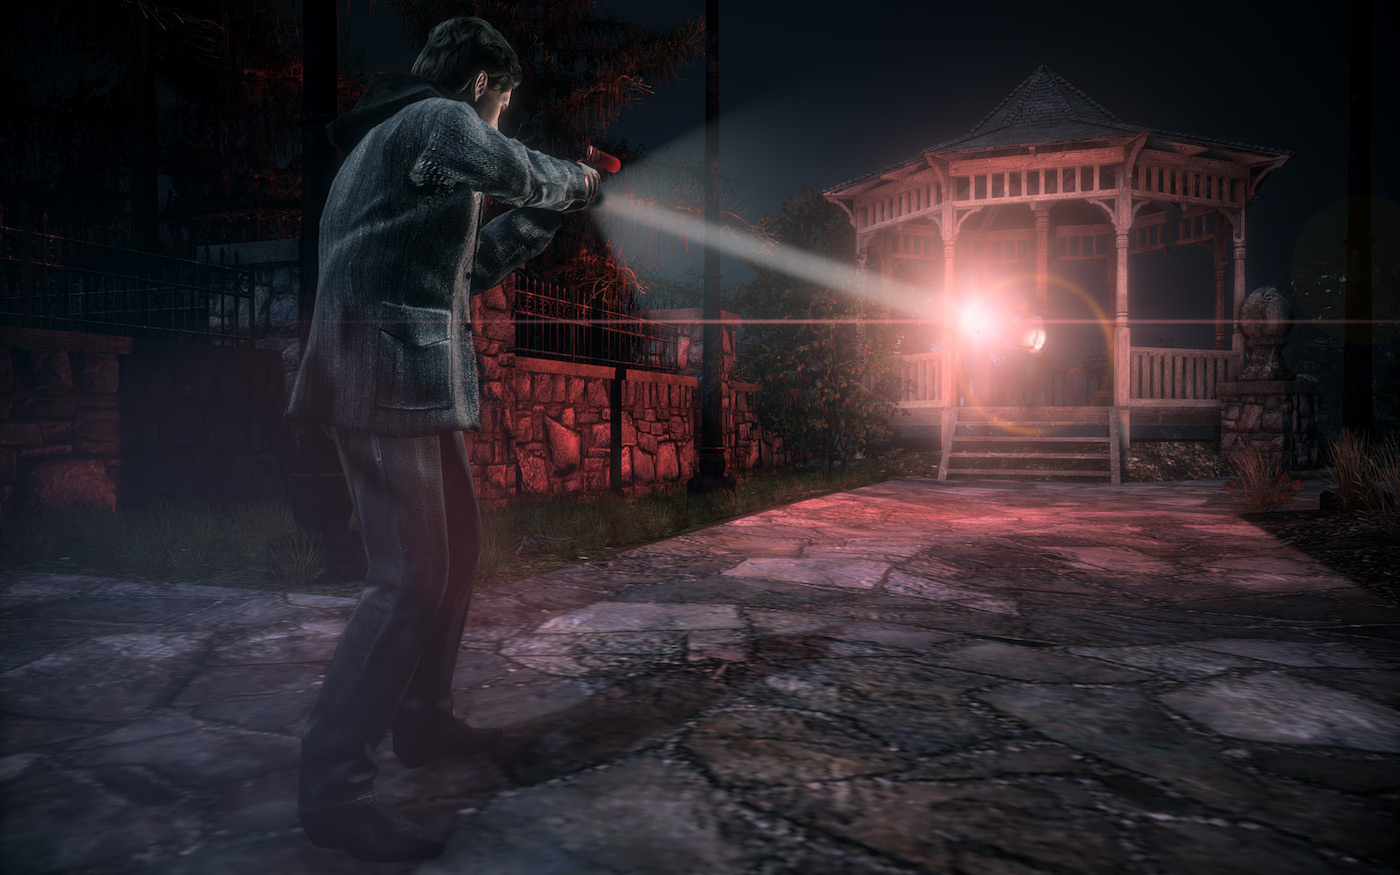 'Alan Wake' teased once more in 'Quantum Break' easter egg